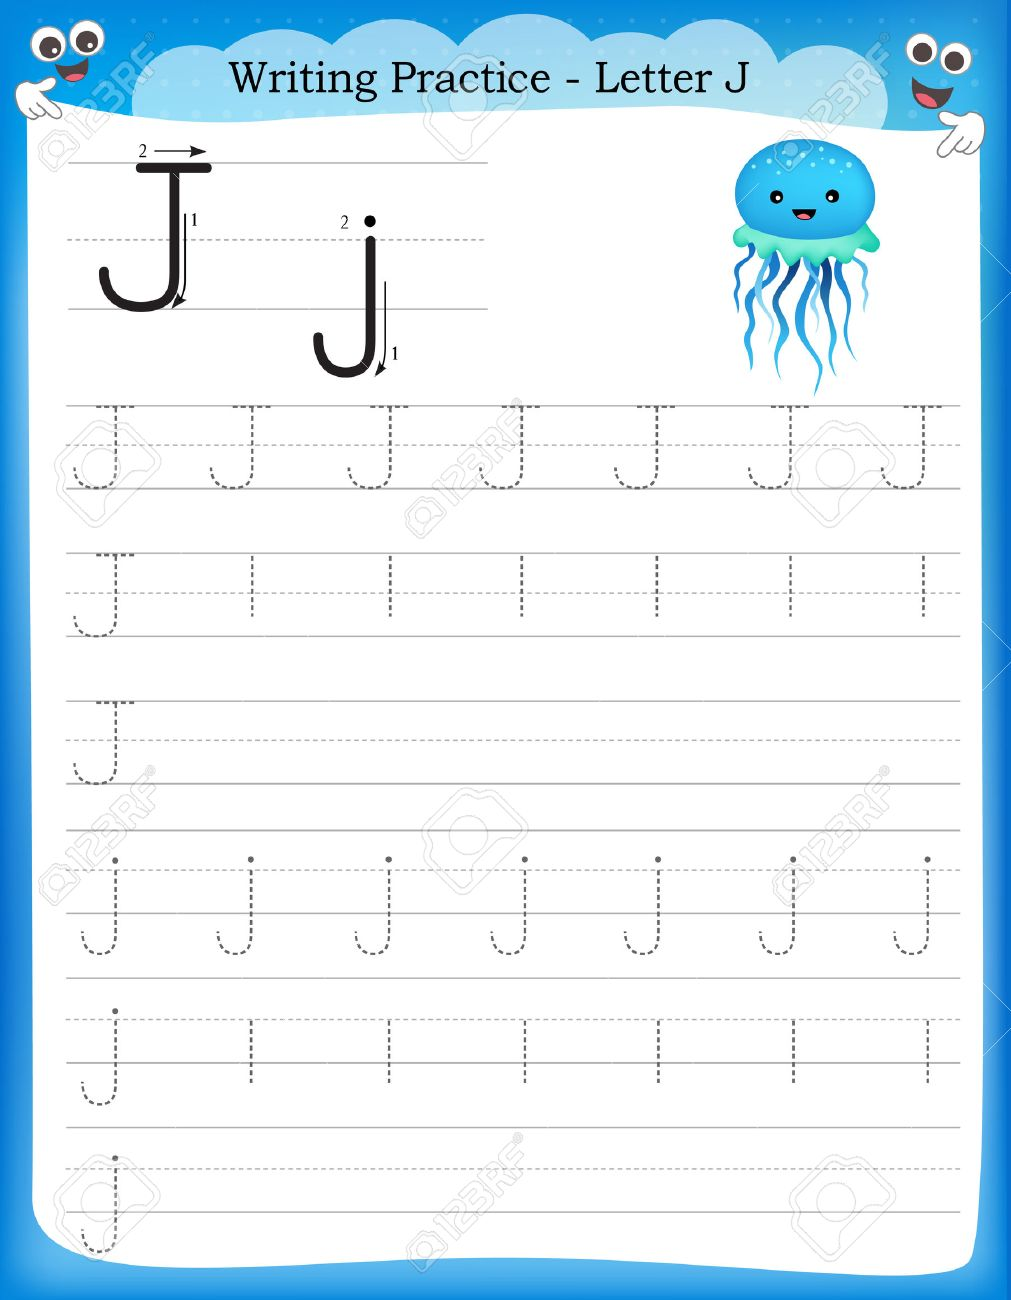 writing practice letter j printable worksheet for preschool